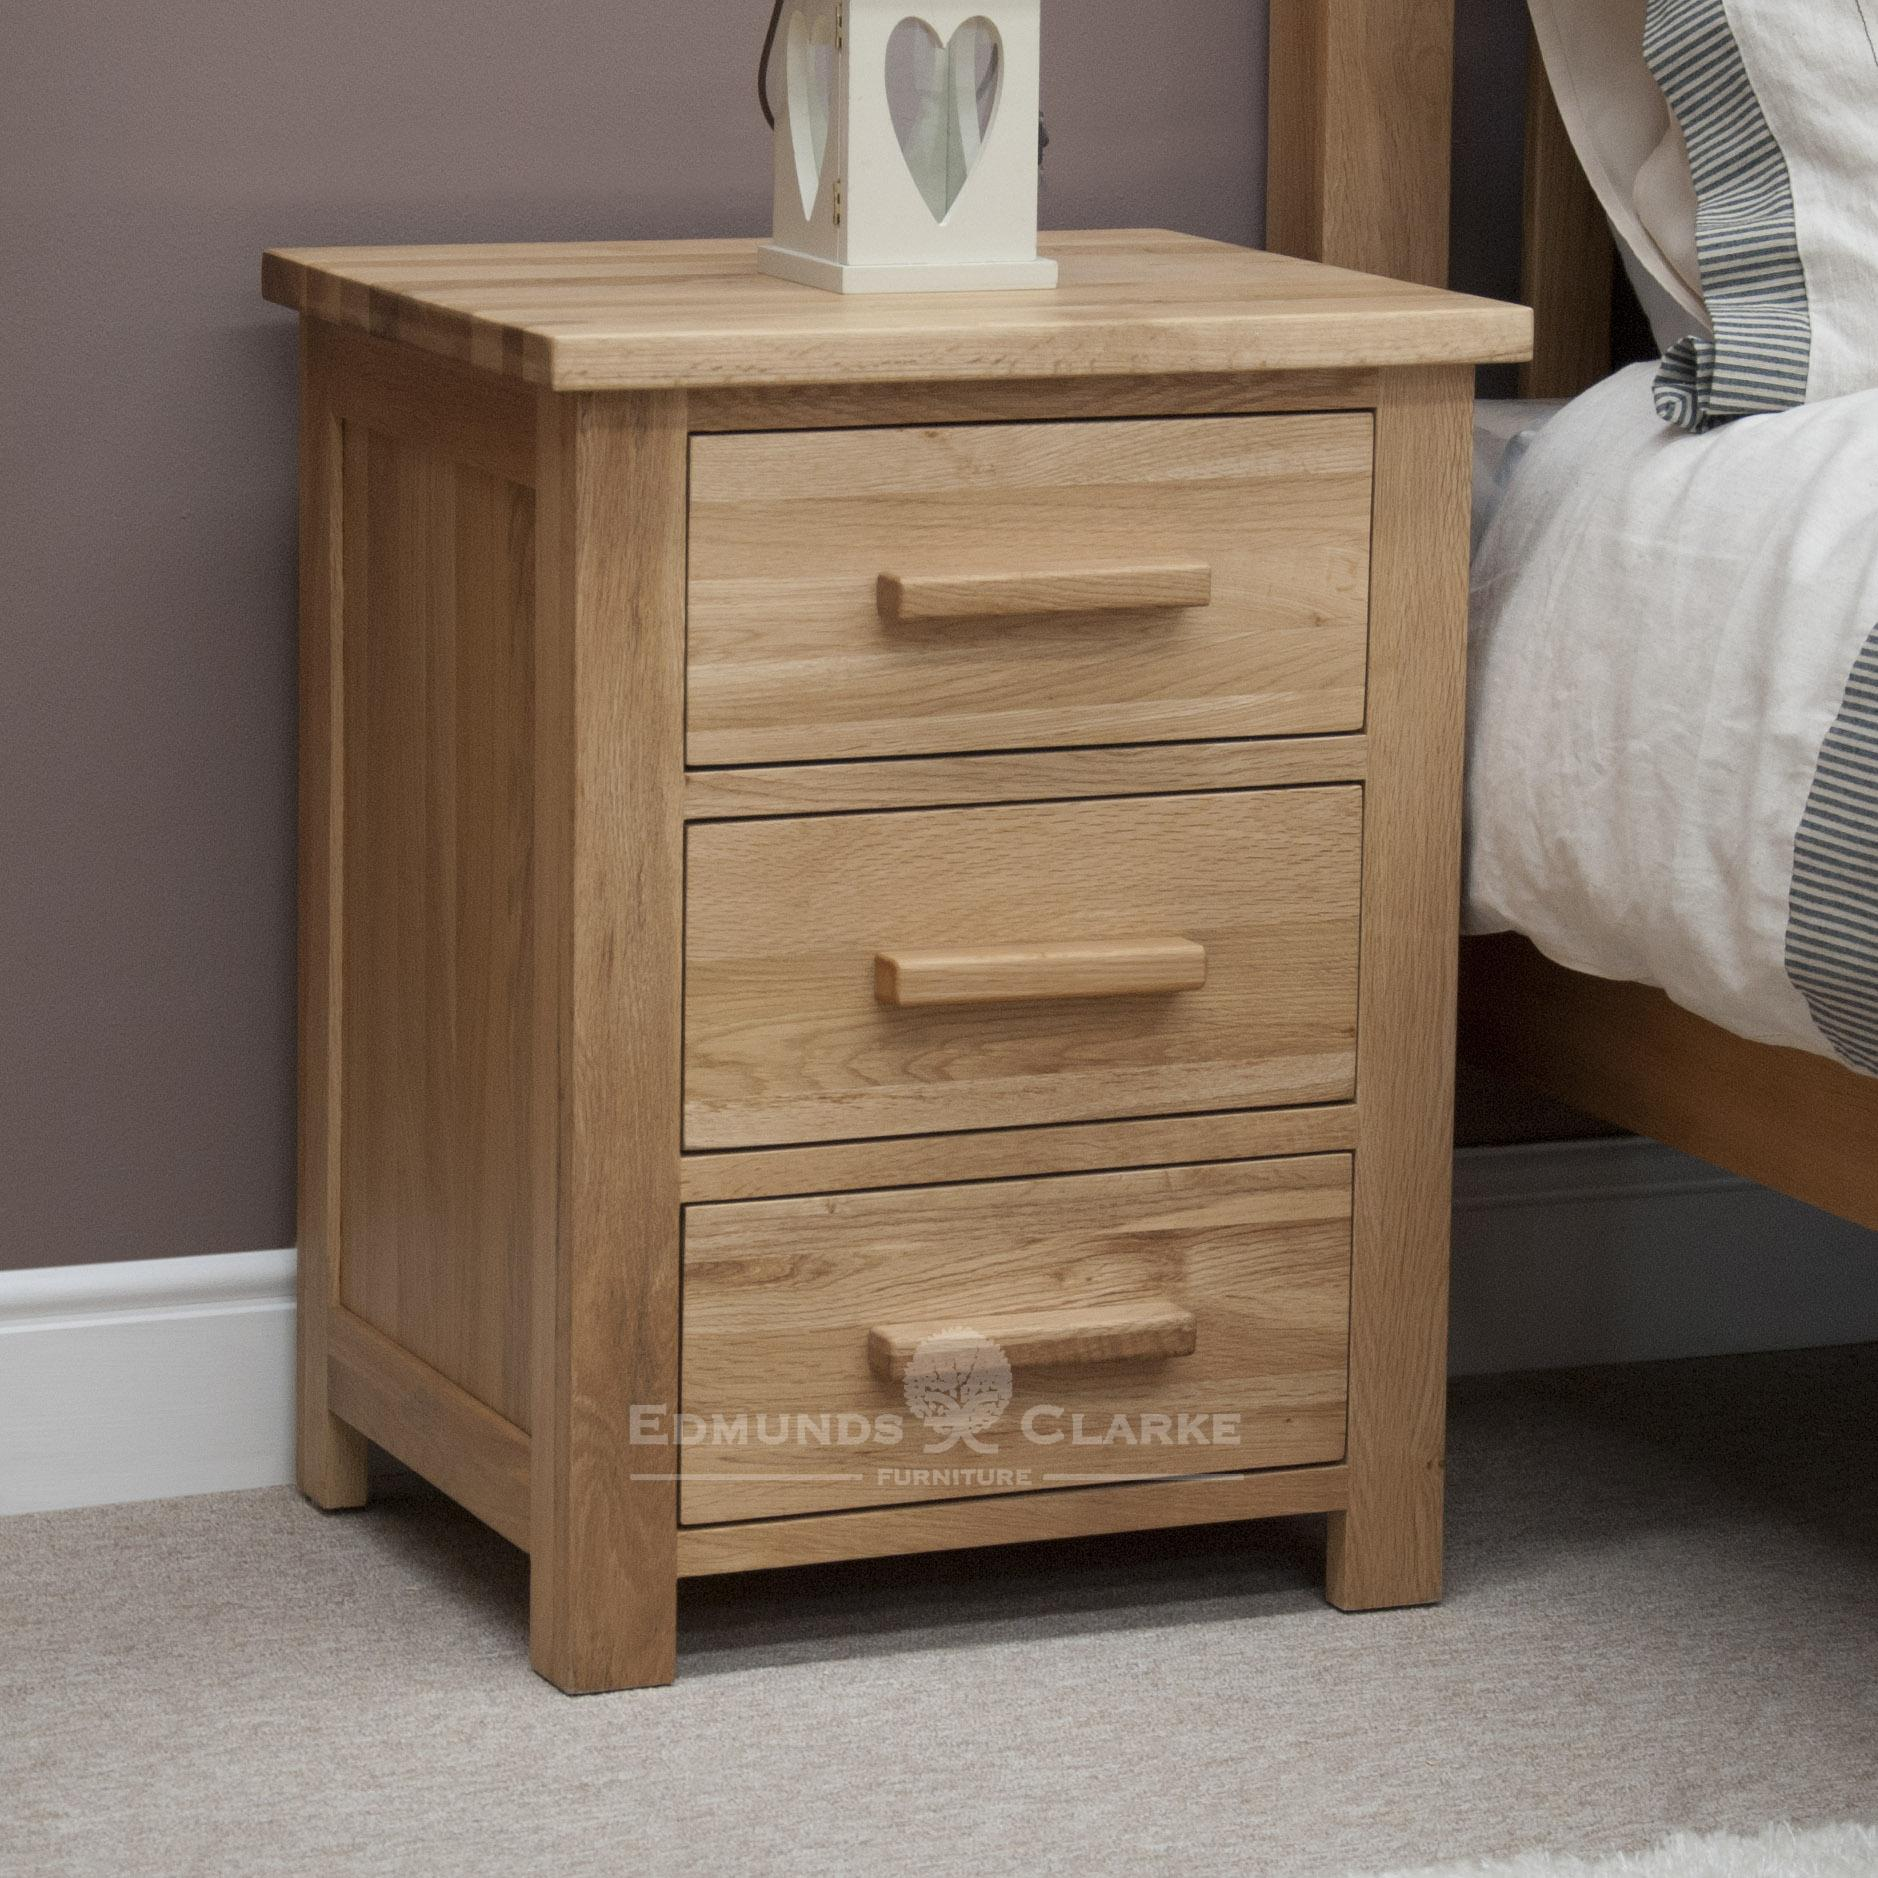 Bury Solid Oak 3 Drawer Bedside Chest. Light lacquer oak with choice of bar handles